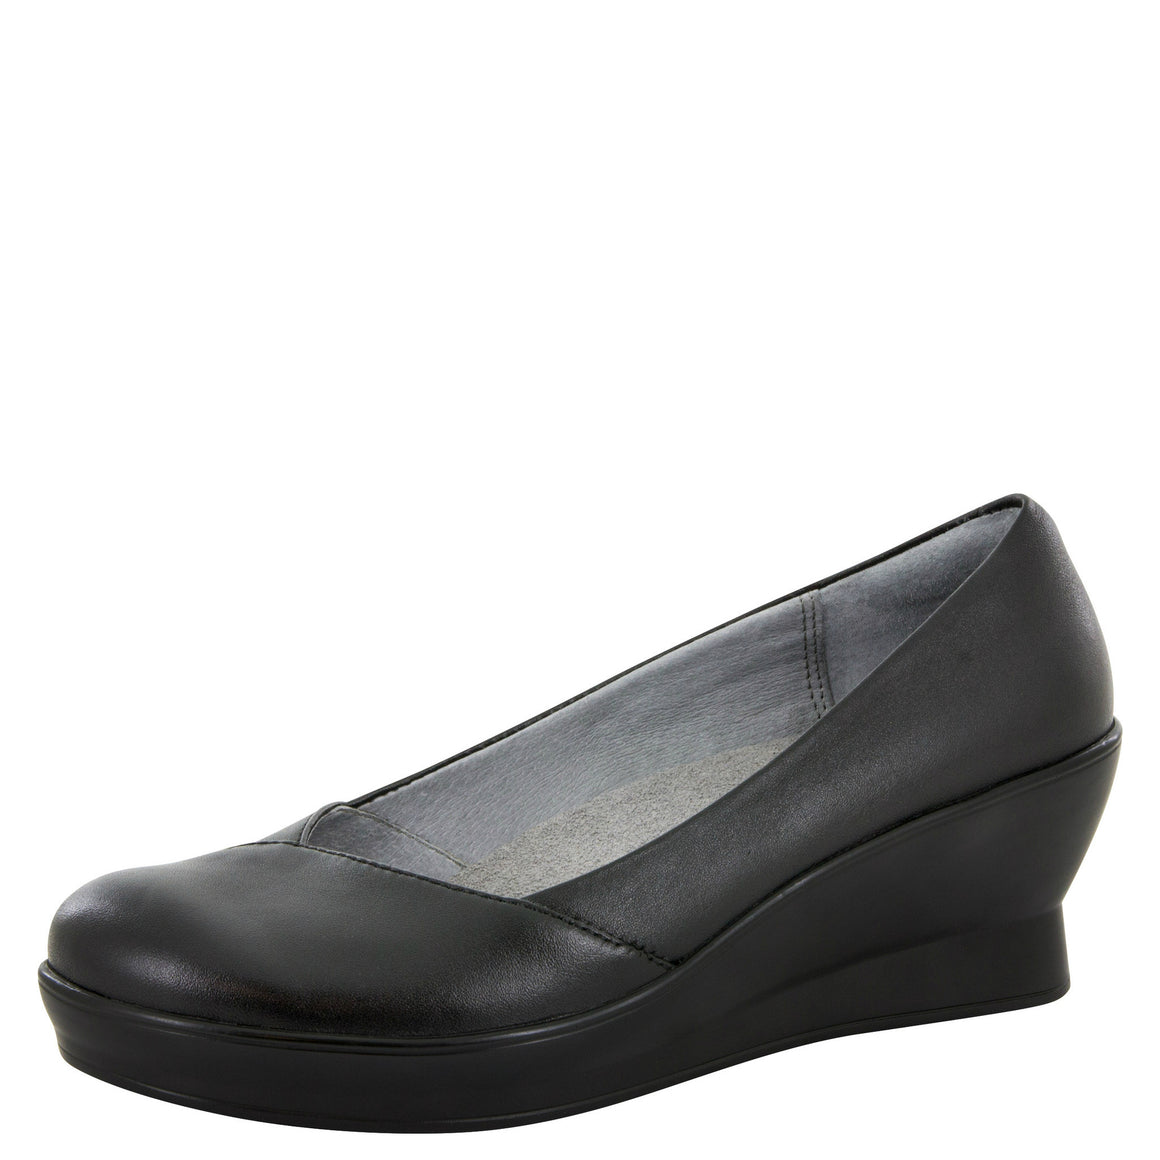 Alegria Women's Flirt Slip-On Wedge - Black Nappa FLI-601